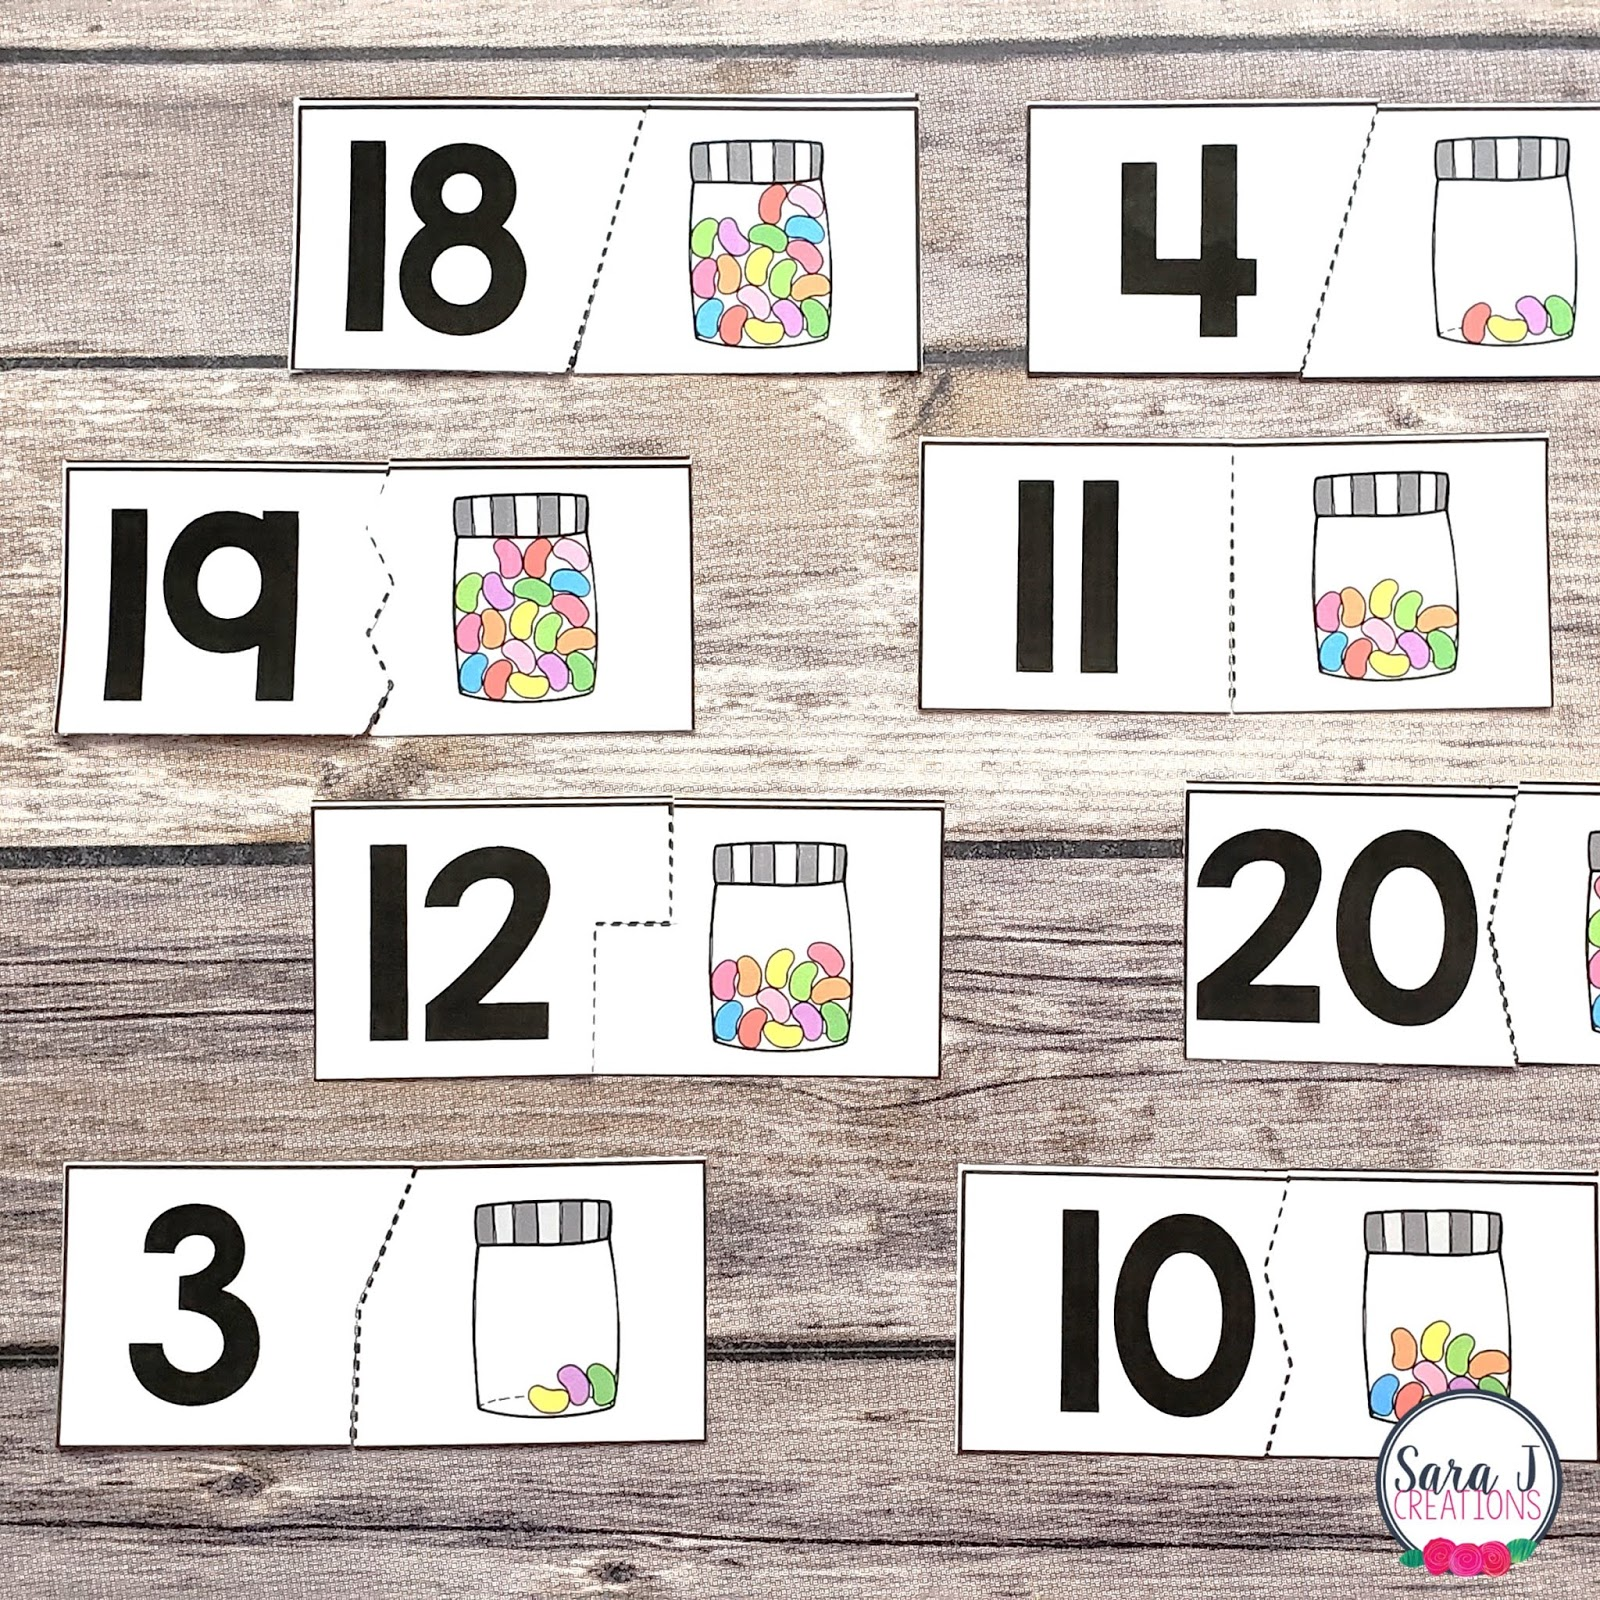 This is a photo of Free Printable Numbers 1-20 with regard to mixed up